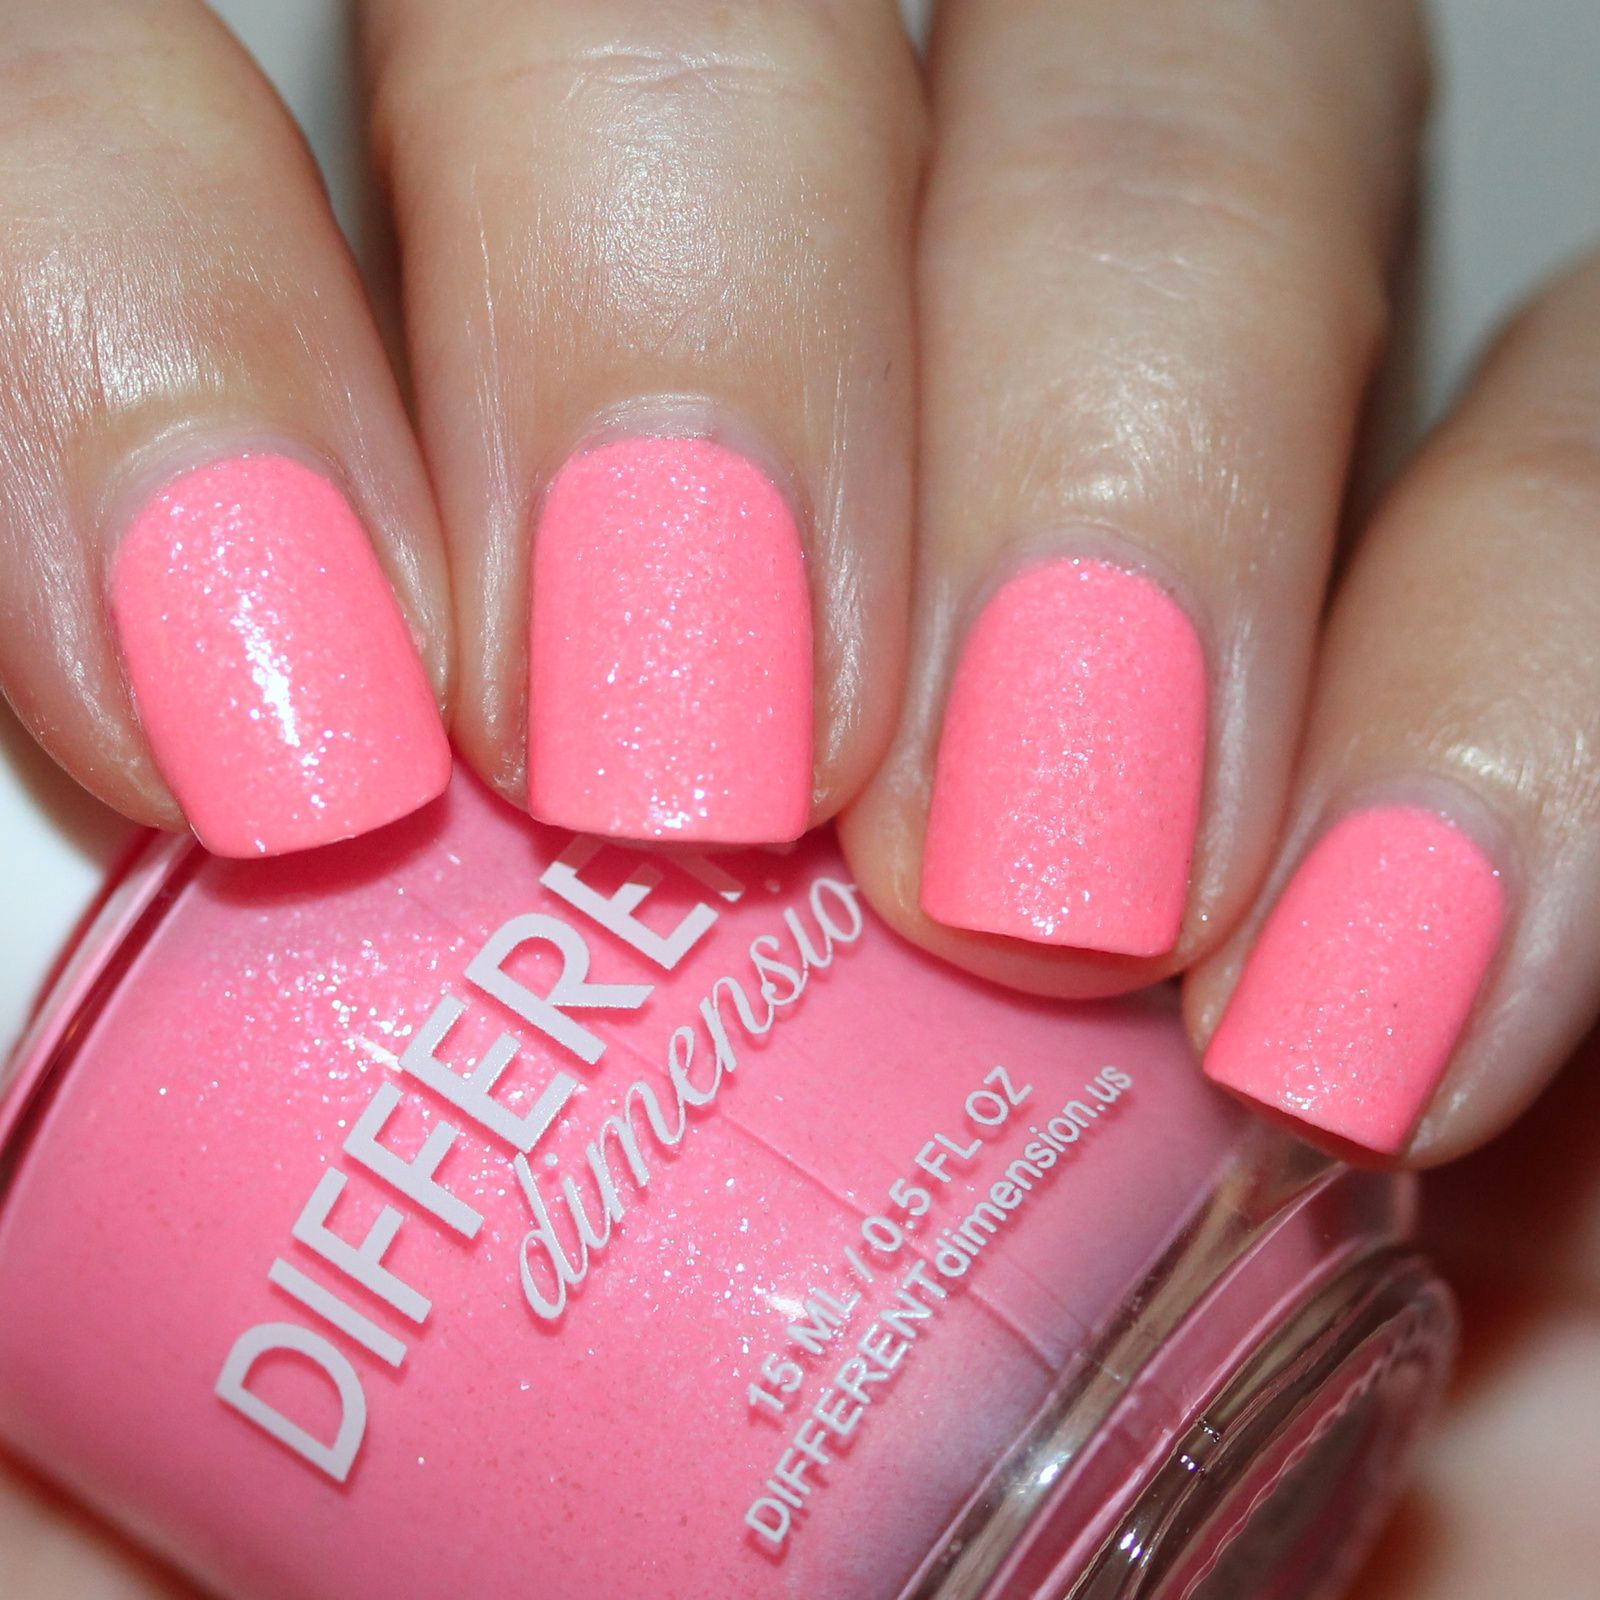 Sally Hansen Complete Care 4-in-1 Extra Moisturizing Nail Treatment / Different Dimension Give Me Love / HK Girl Top Coat